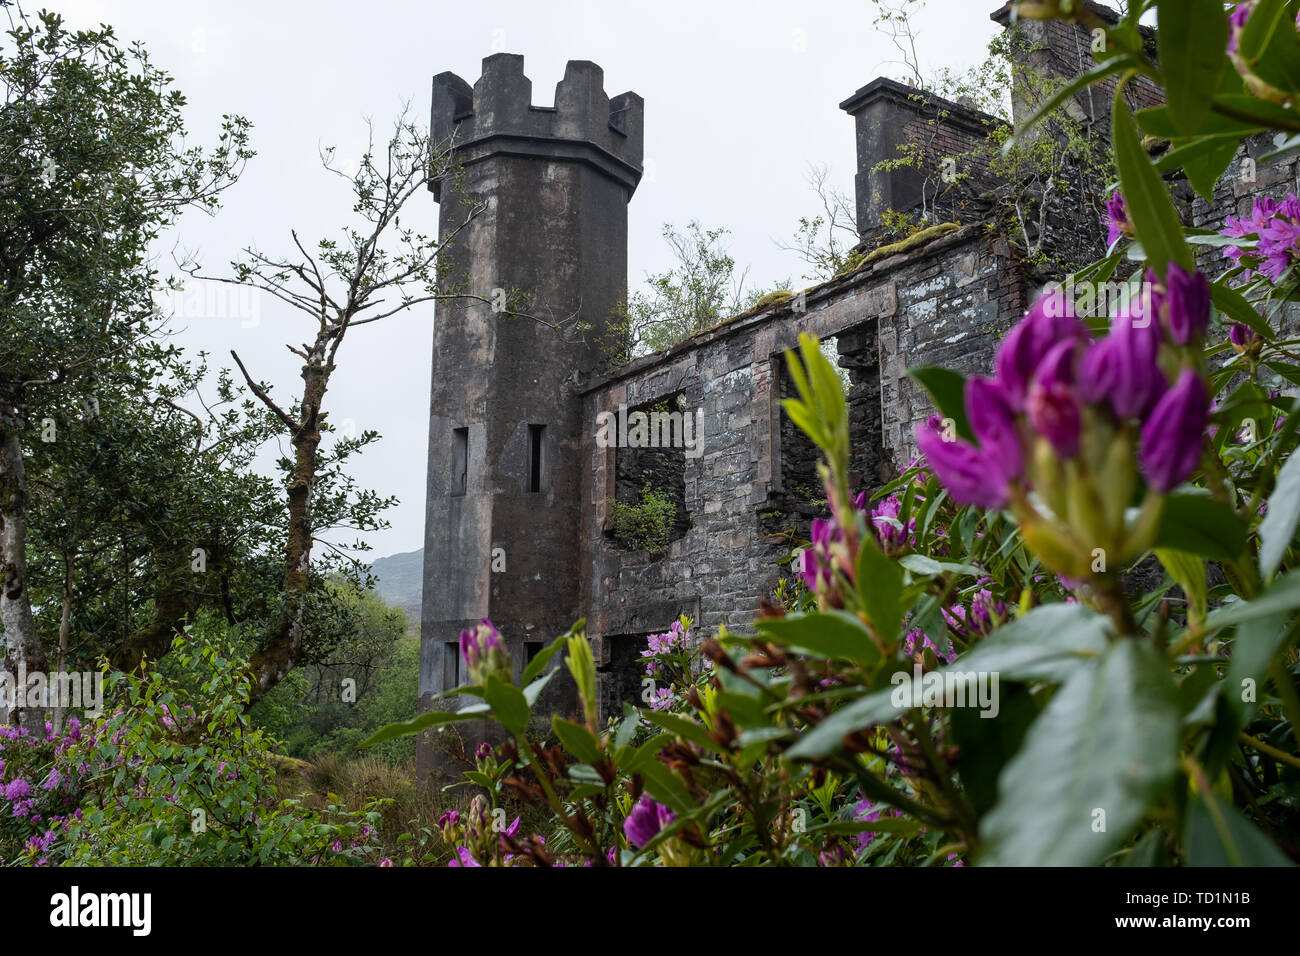 The desolate ruins of a large house or small castle on the road just passed Molls Gap on the Ring of Kerry, Ireland on an overcast day - Stock Image